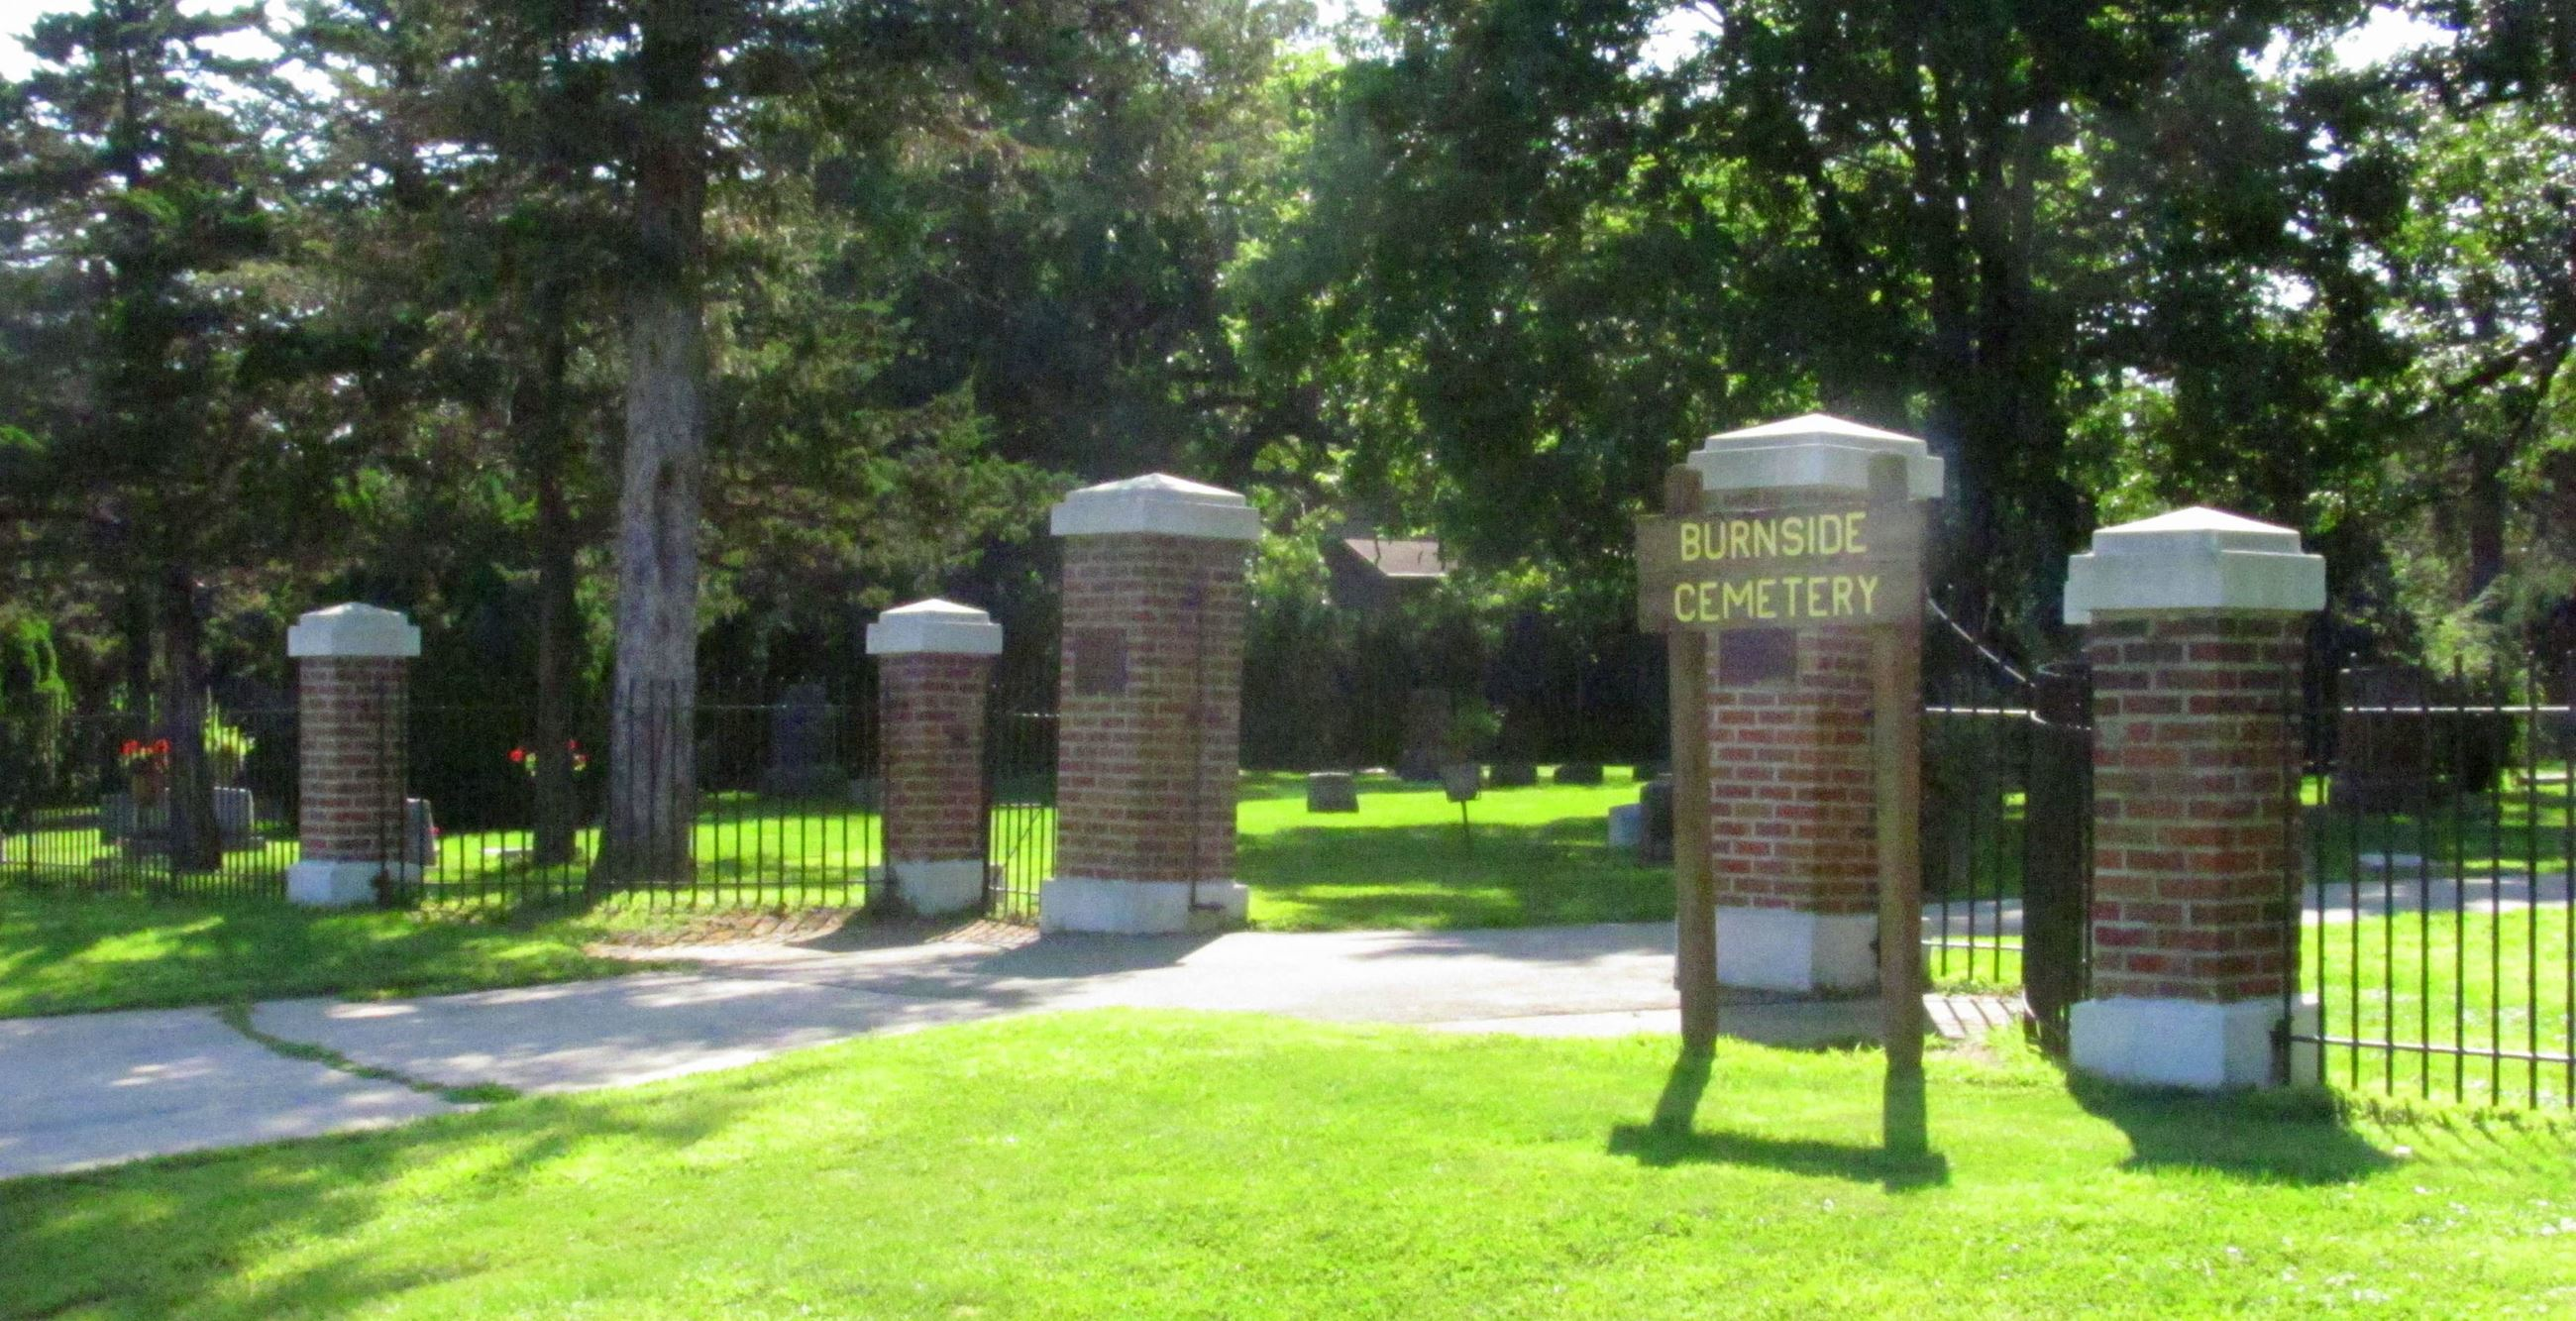 Burnside Cemetery Entrance